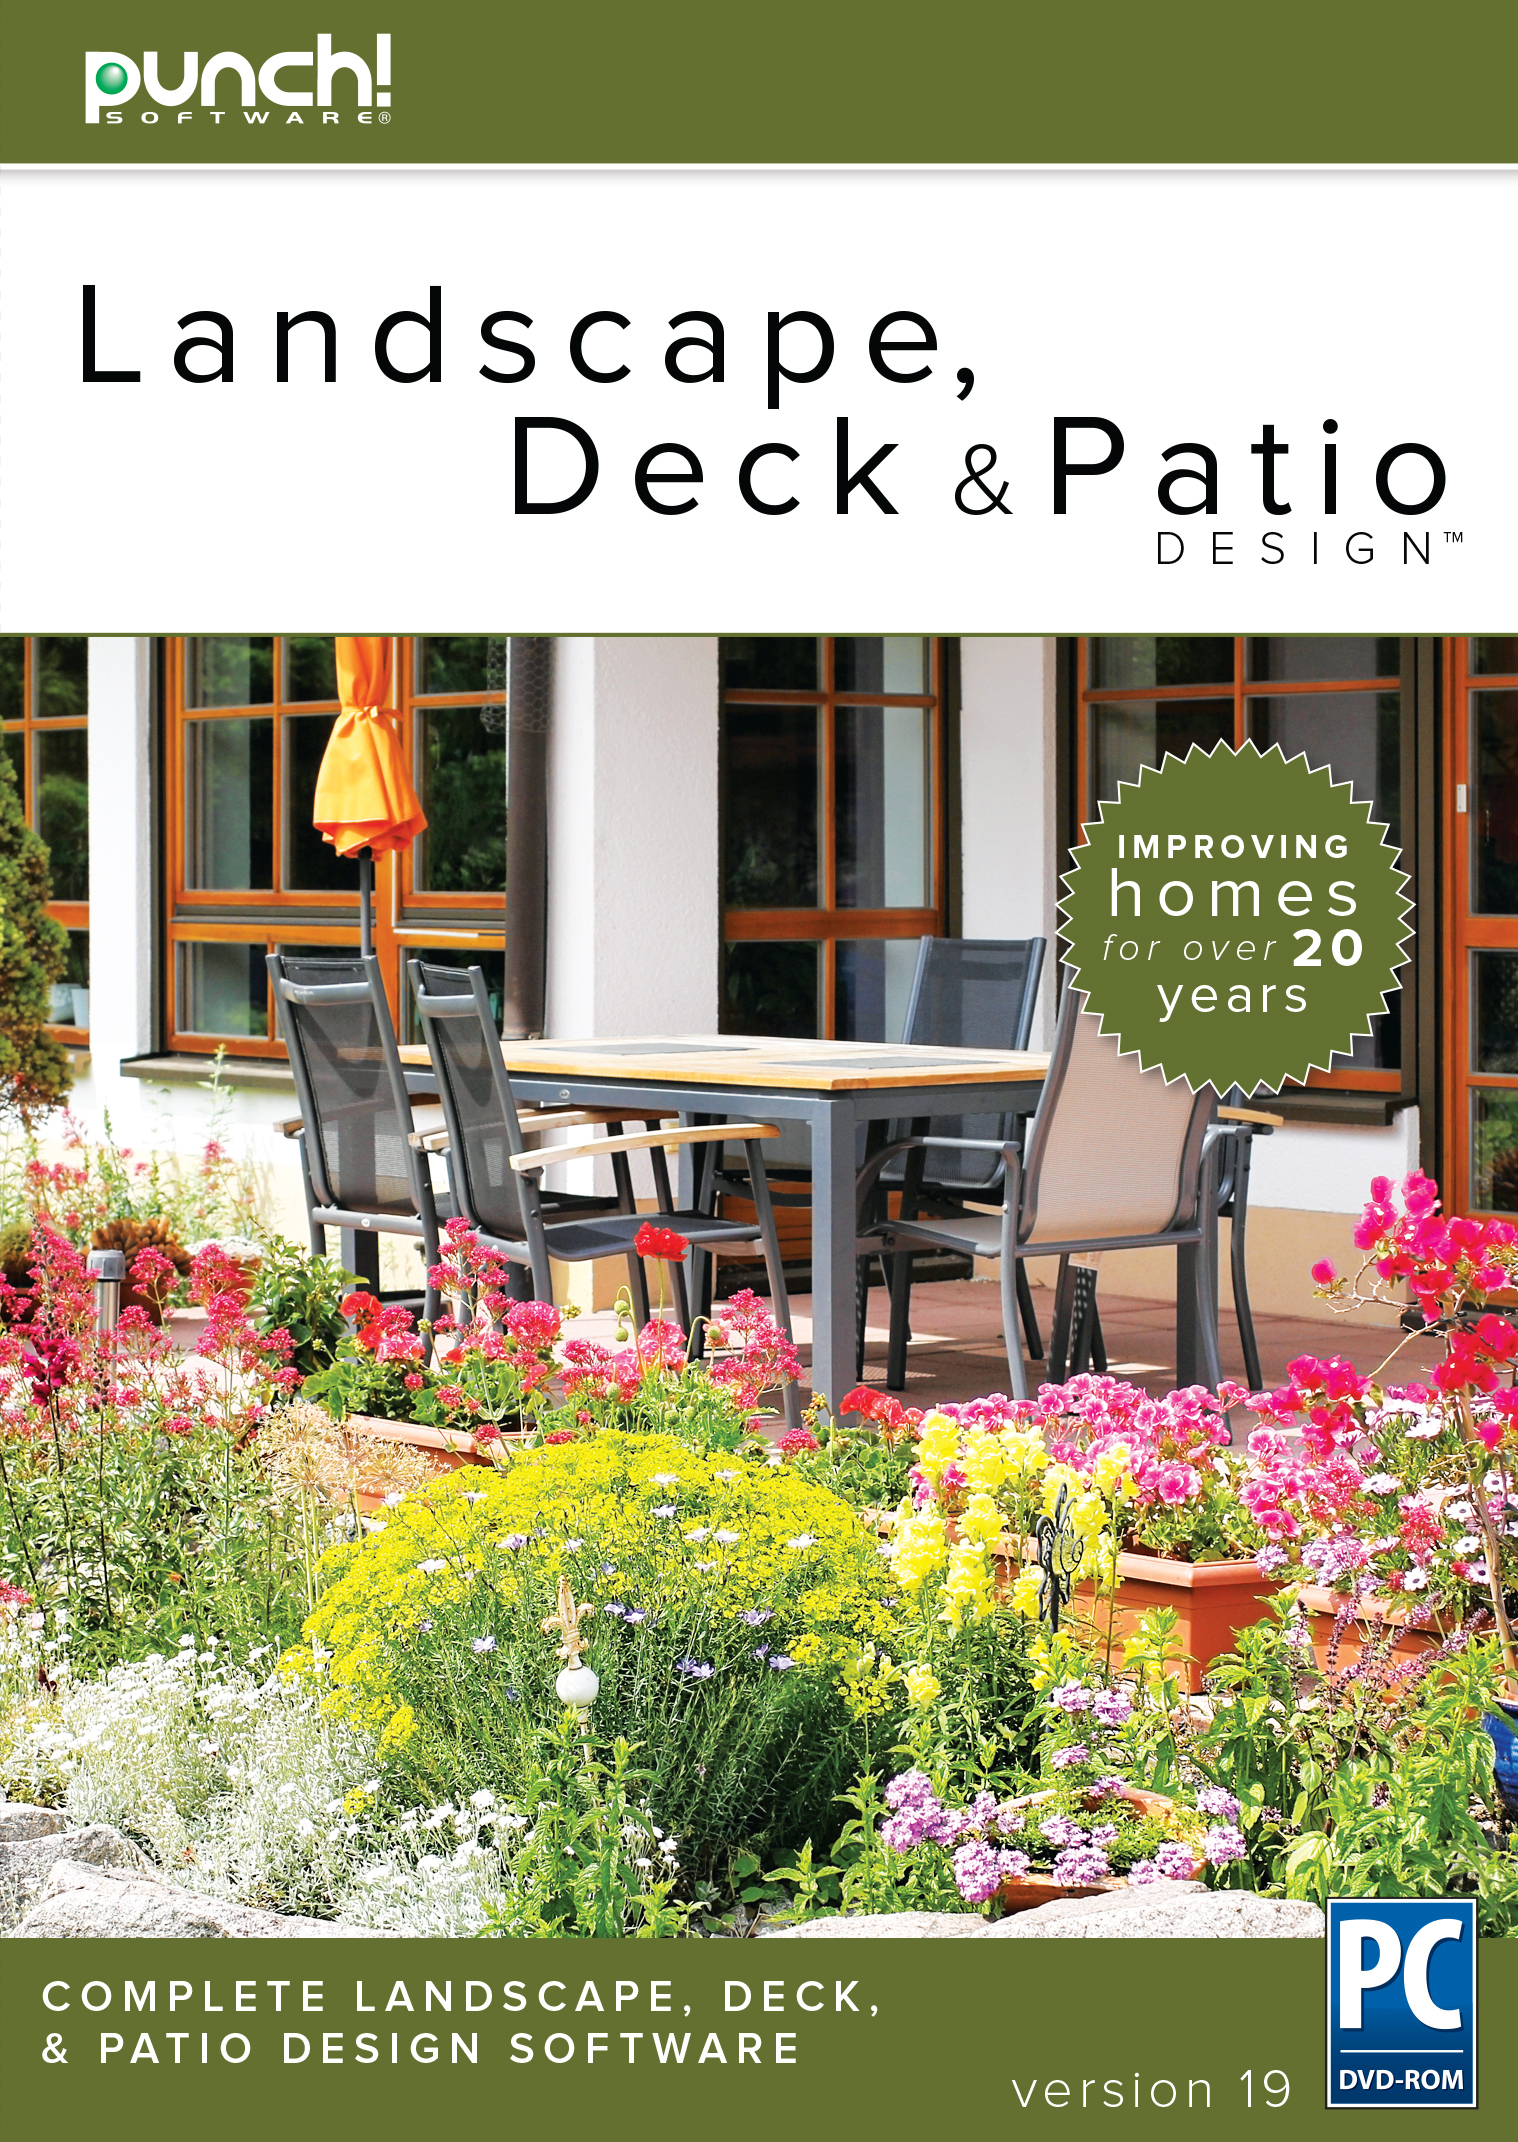 Landscape, Deck and Patio Design v19 for Windows PC [Download]: Software - Amazon.com: Punch! Landscape, Deck And Patio Design V19 For Windows